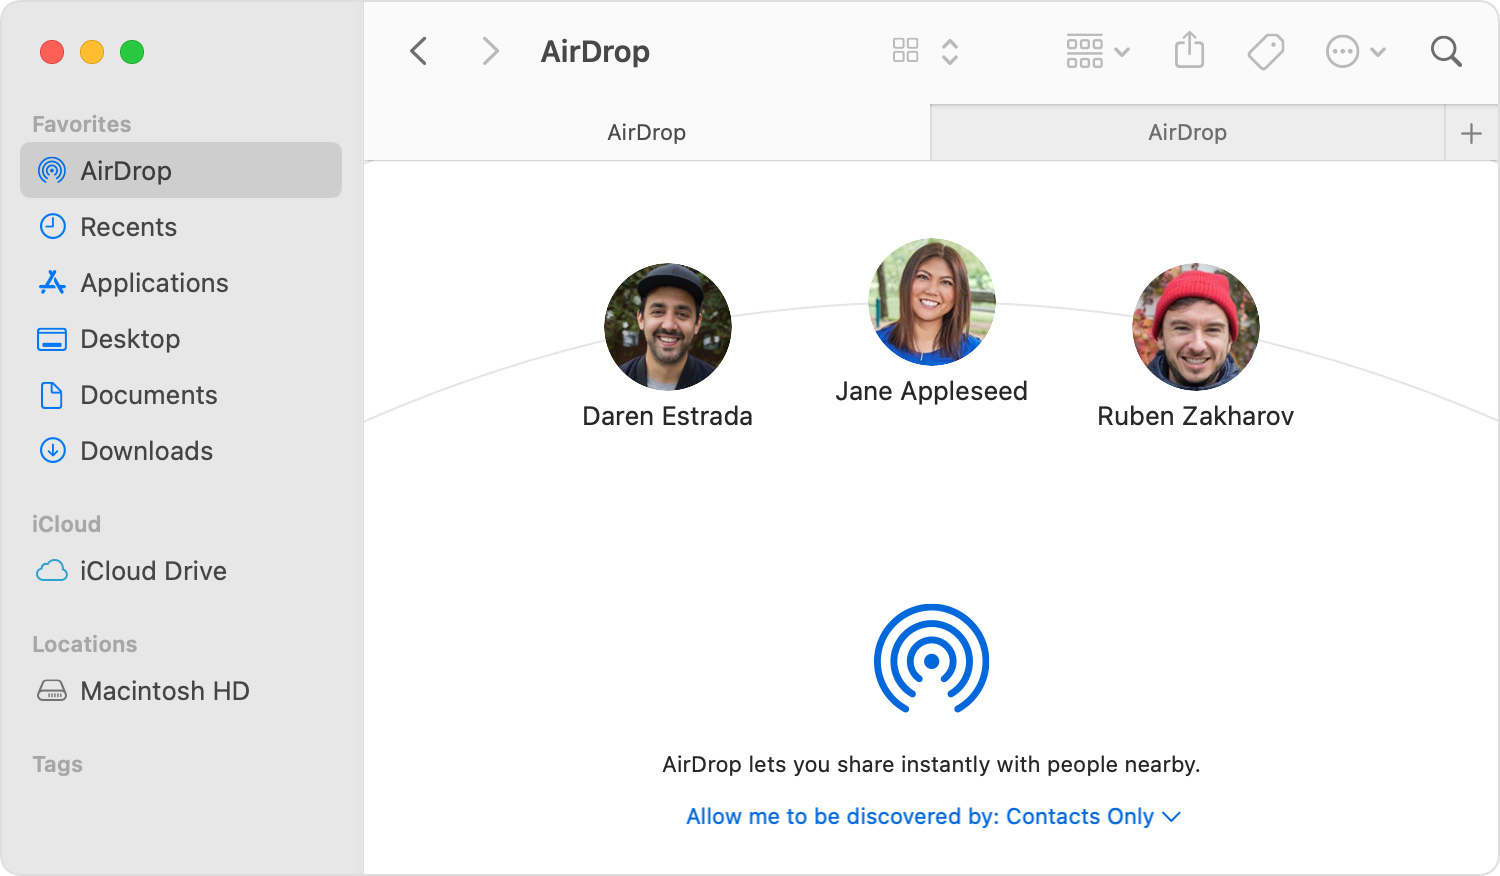 AirDrop window in the Finder